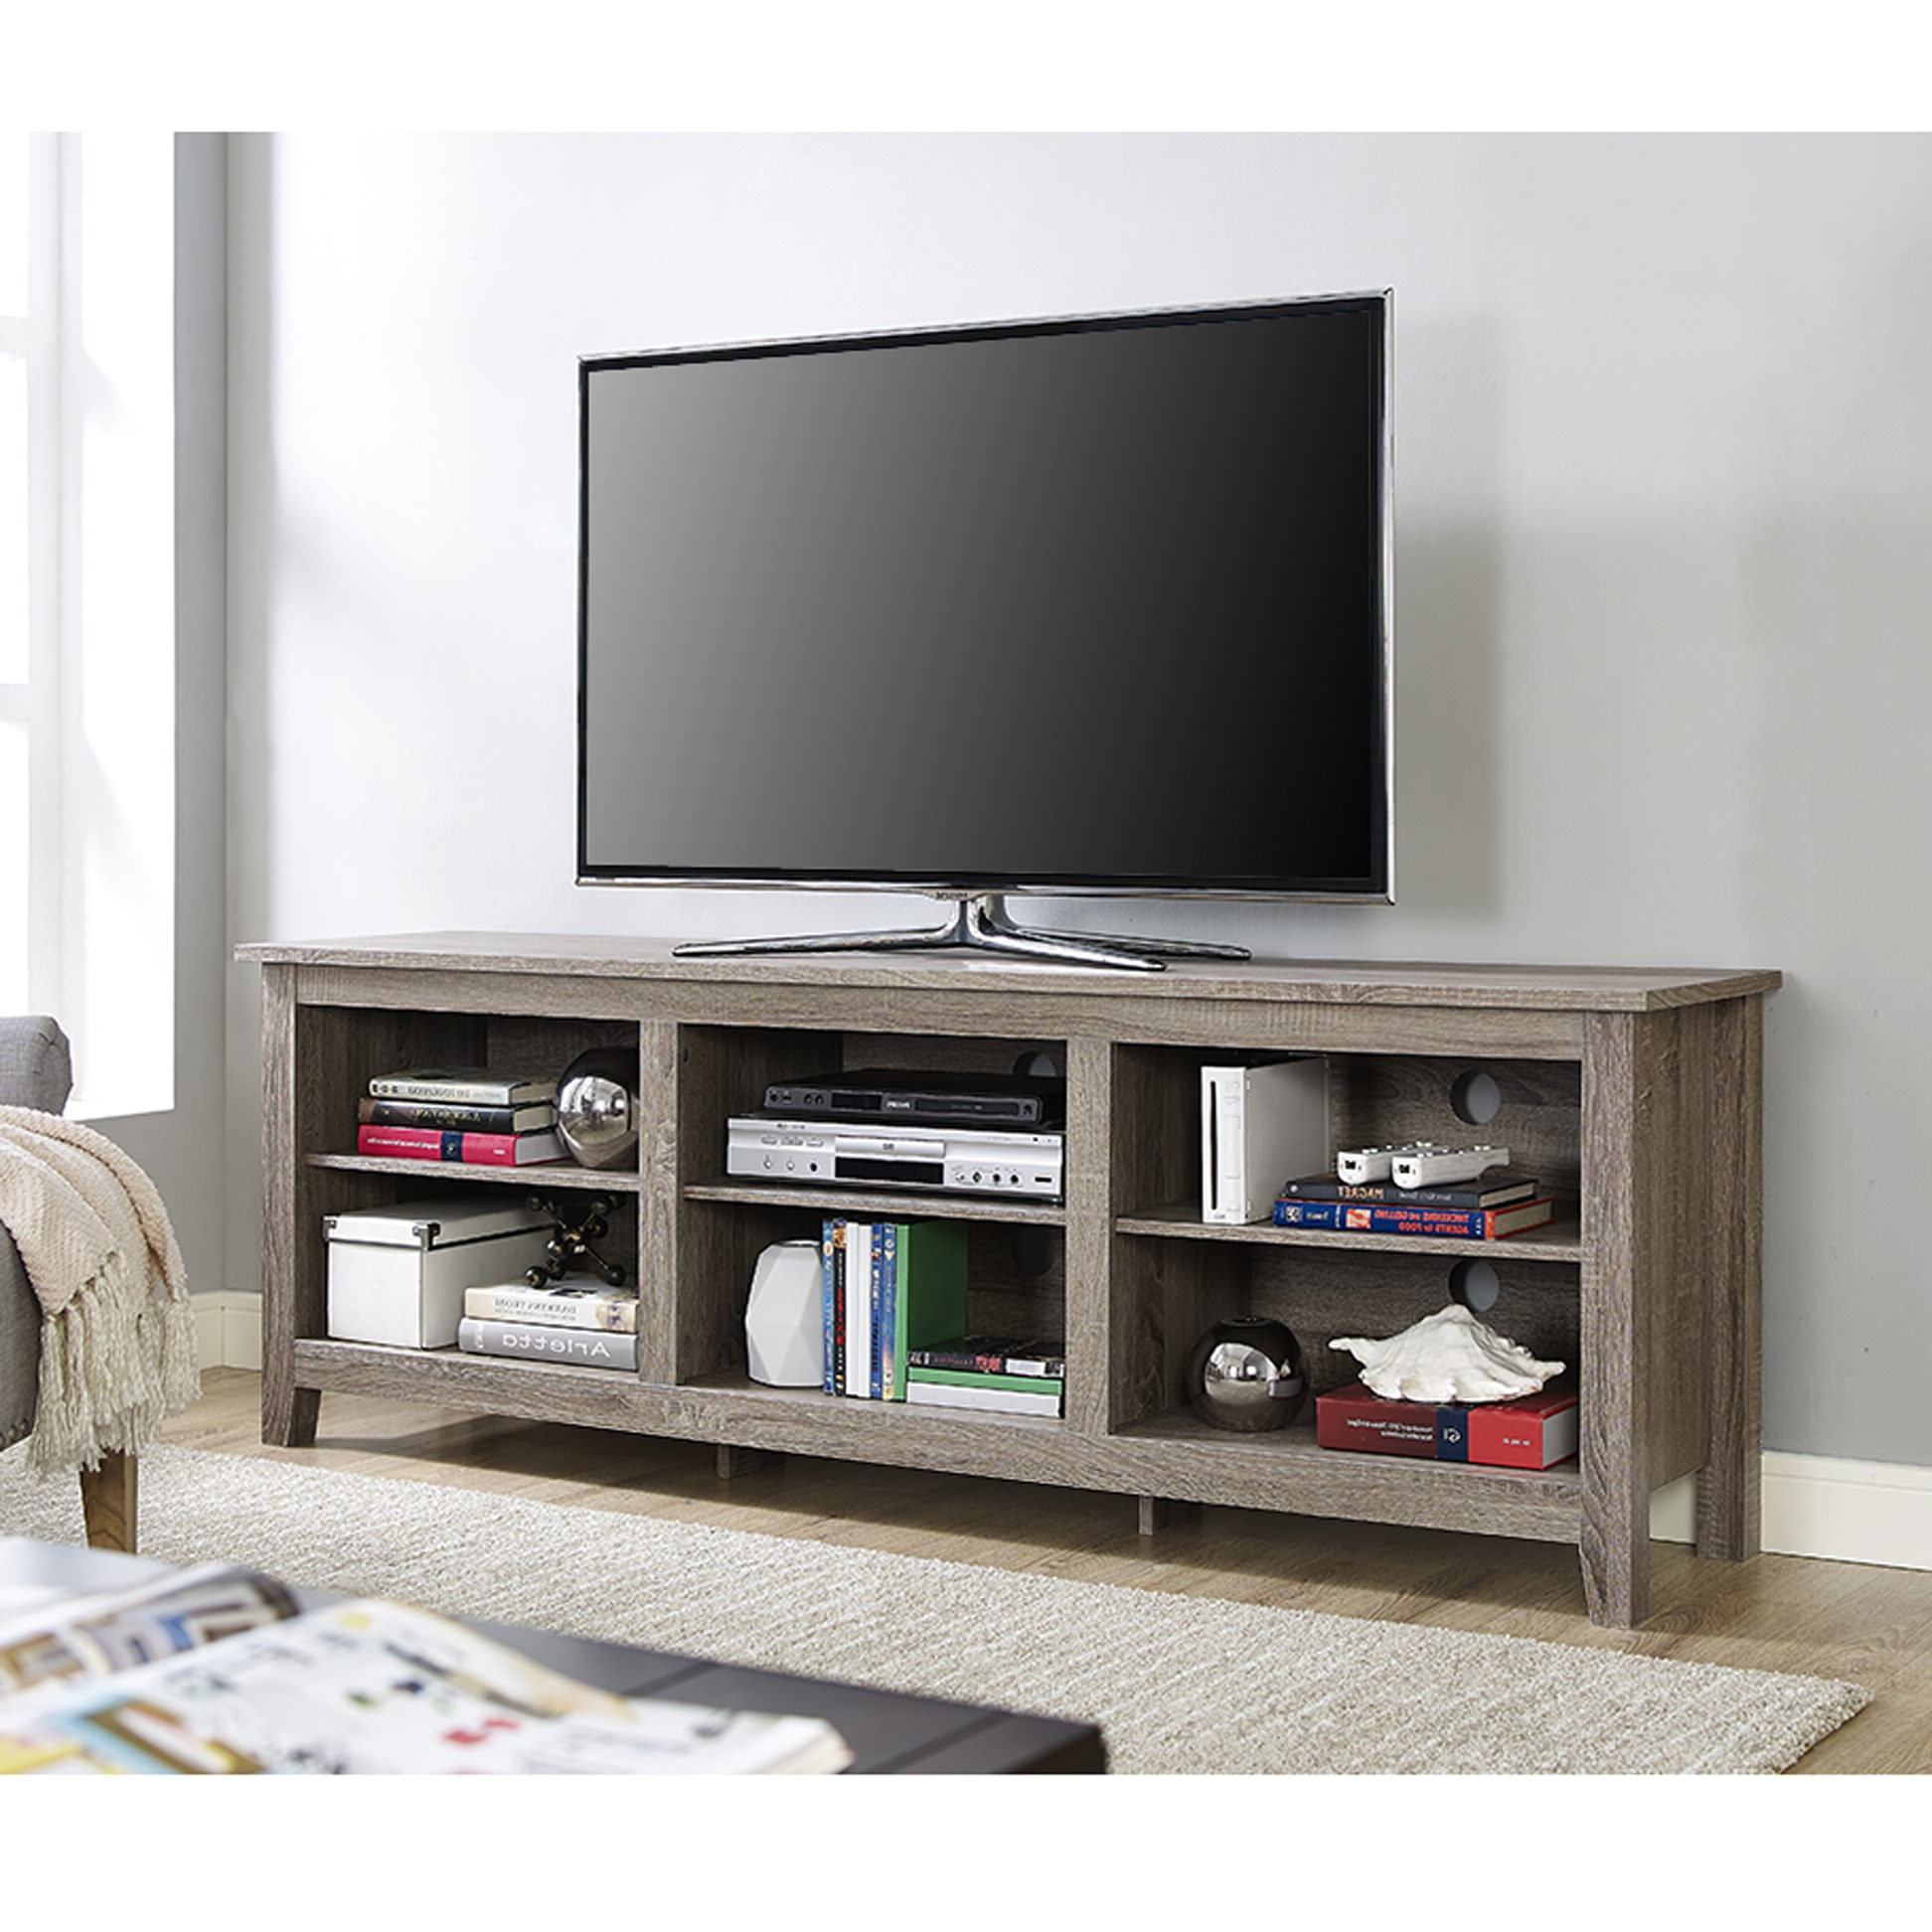 Thrifty Inch Boy Style Wood Tv Stand Rustic Brownwalker Edison With Annabelle Cream 70 Inch Tv Stands (View 9 of 20)